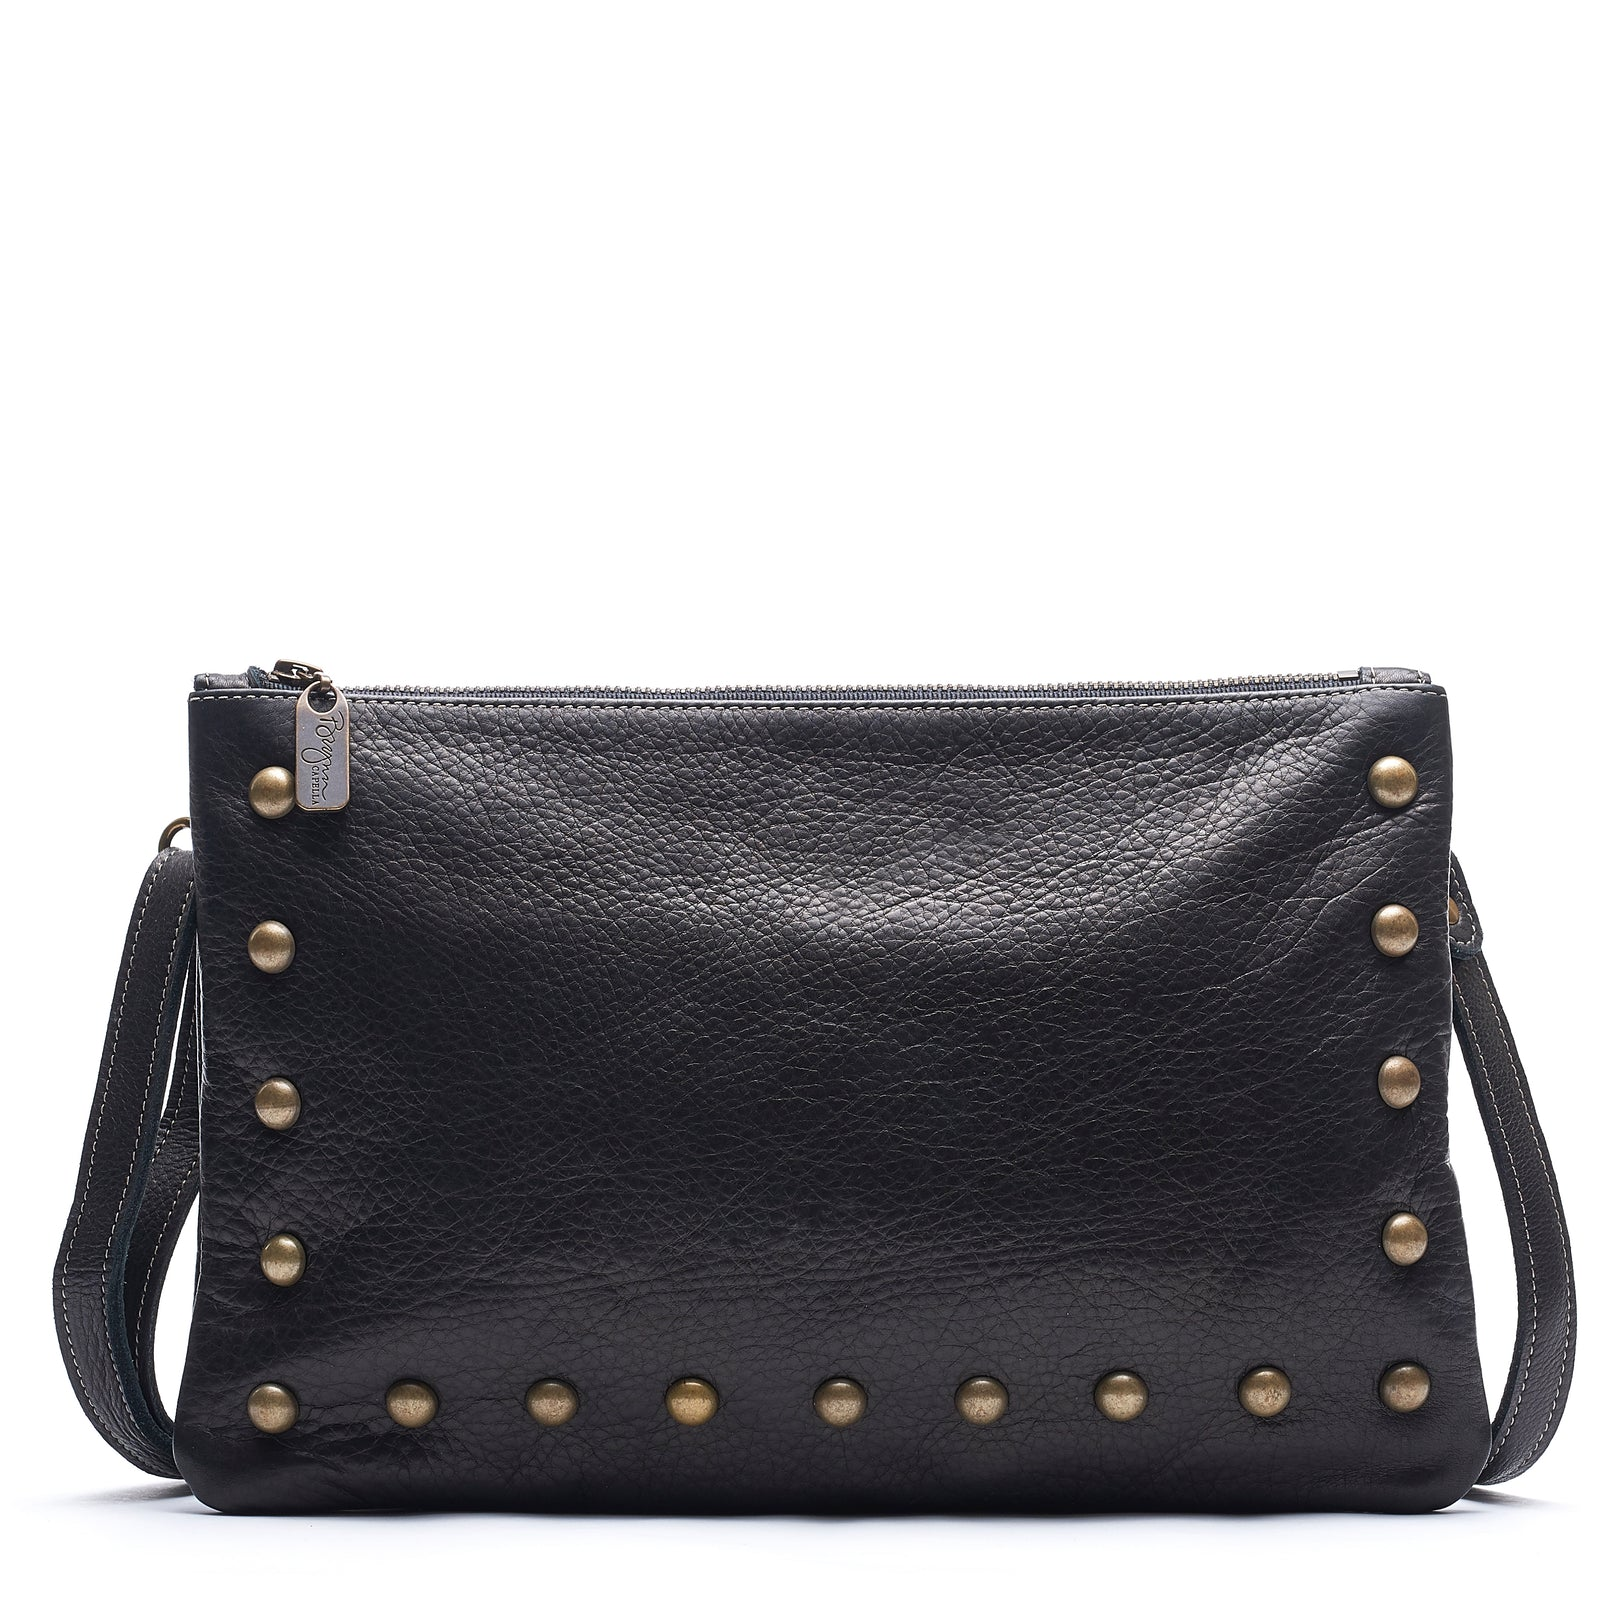 Nikki Clutch/Crossbody - Black Sand - Brynn Capella, Small Crossbody